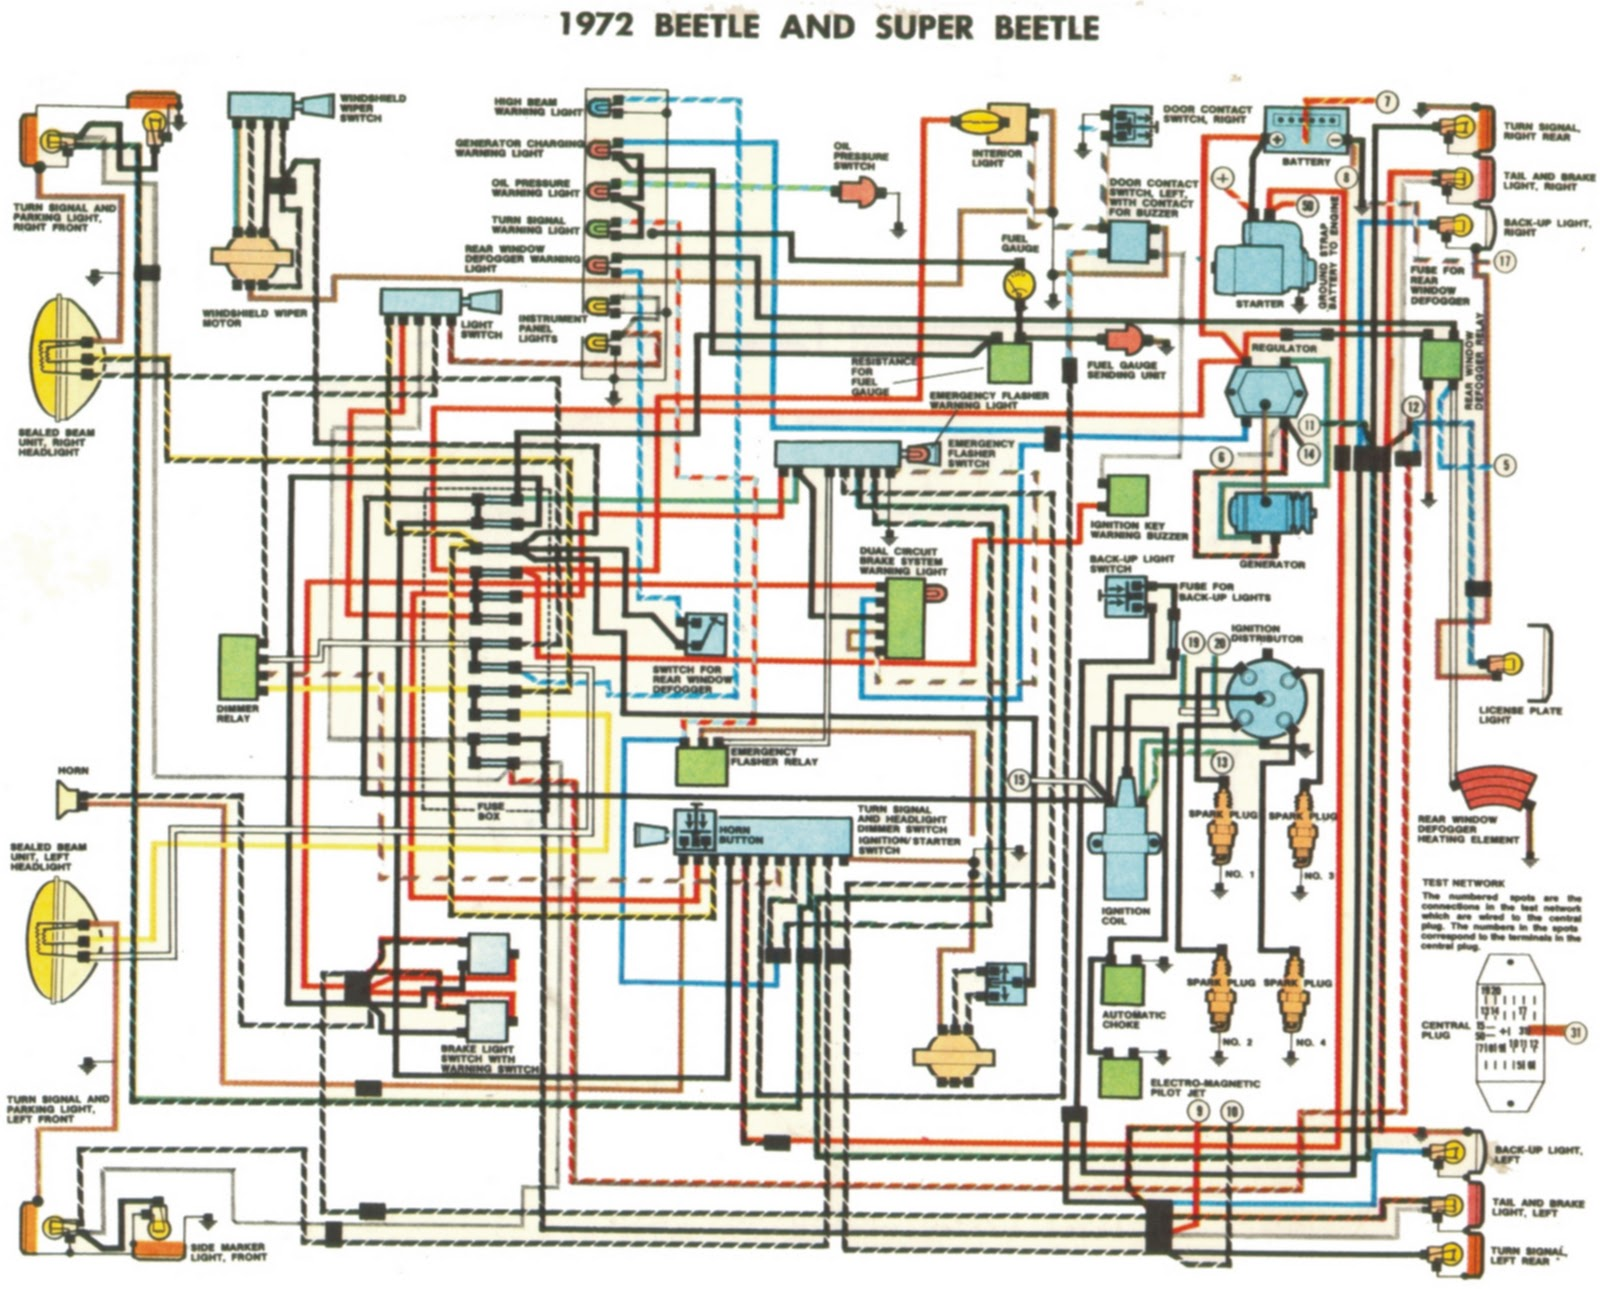 vw beetle wiring diagram wiring diagrams online 1972 beetle and super beetle wiring diagrams